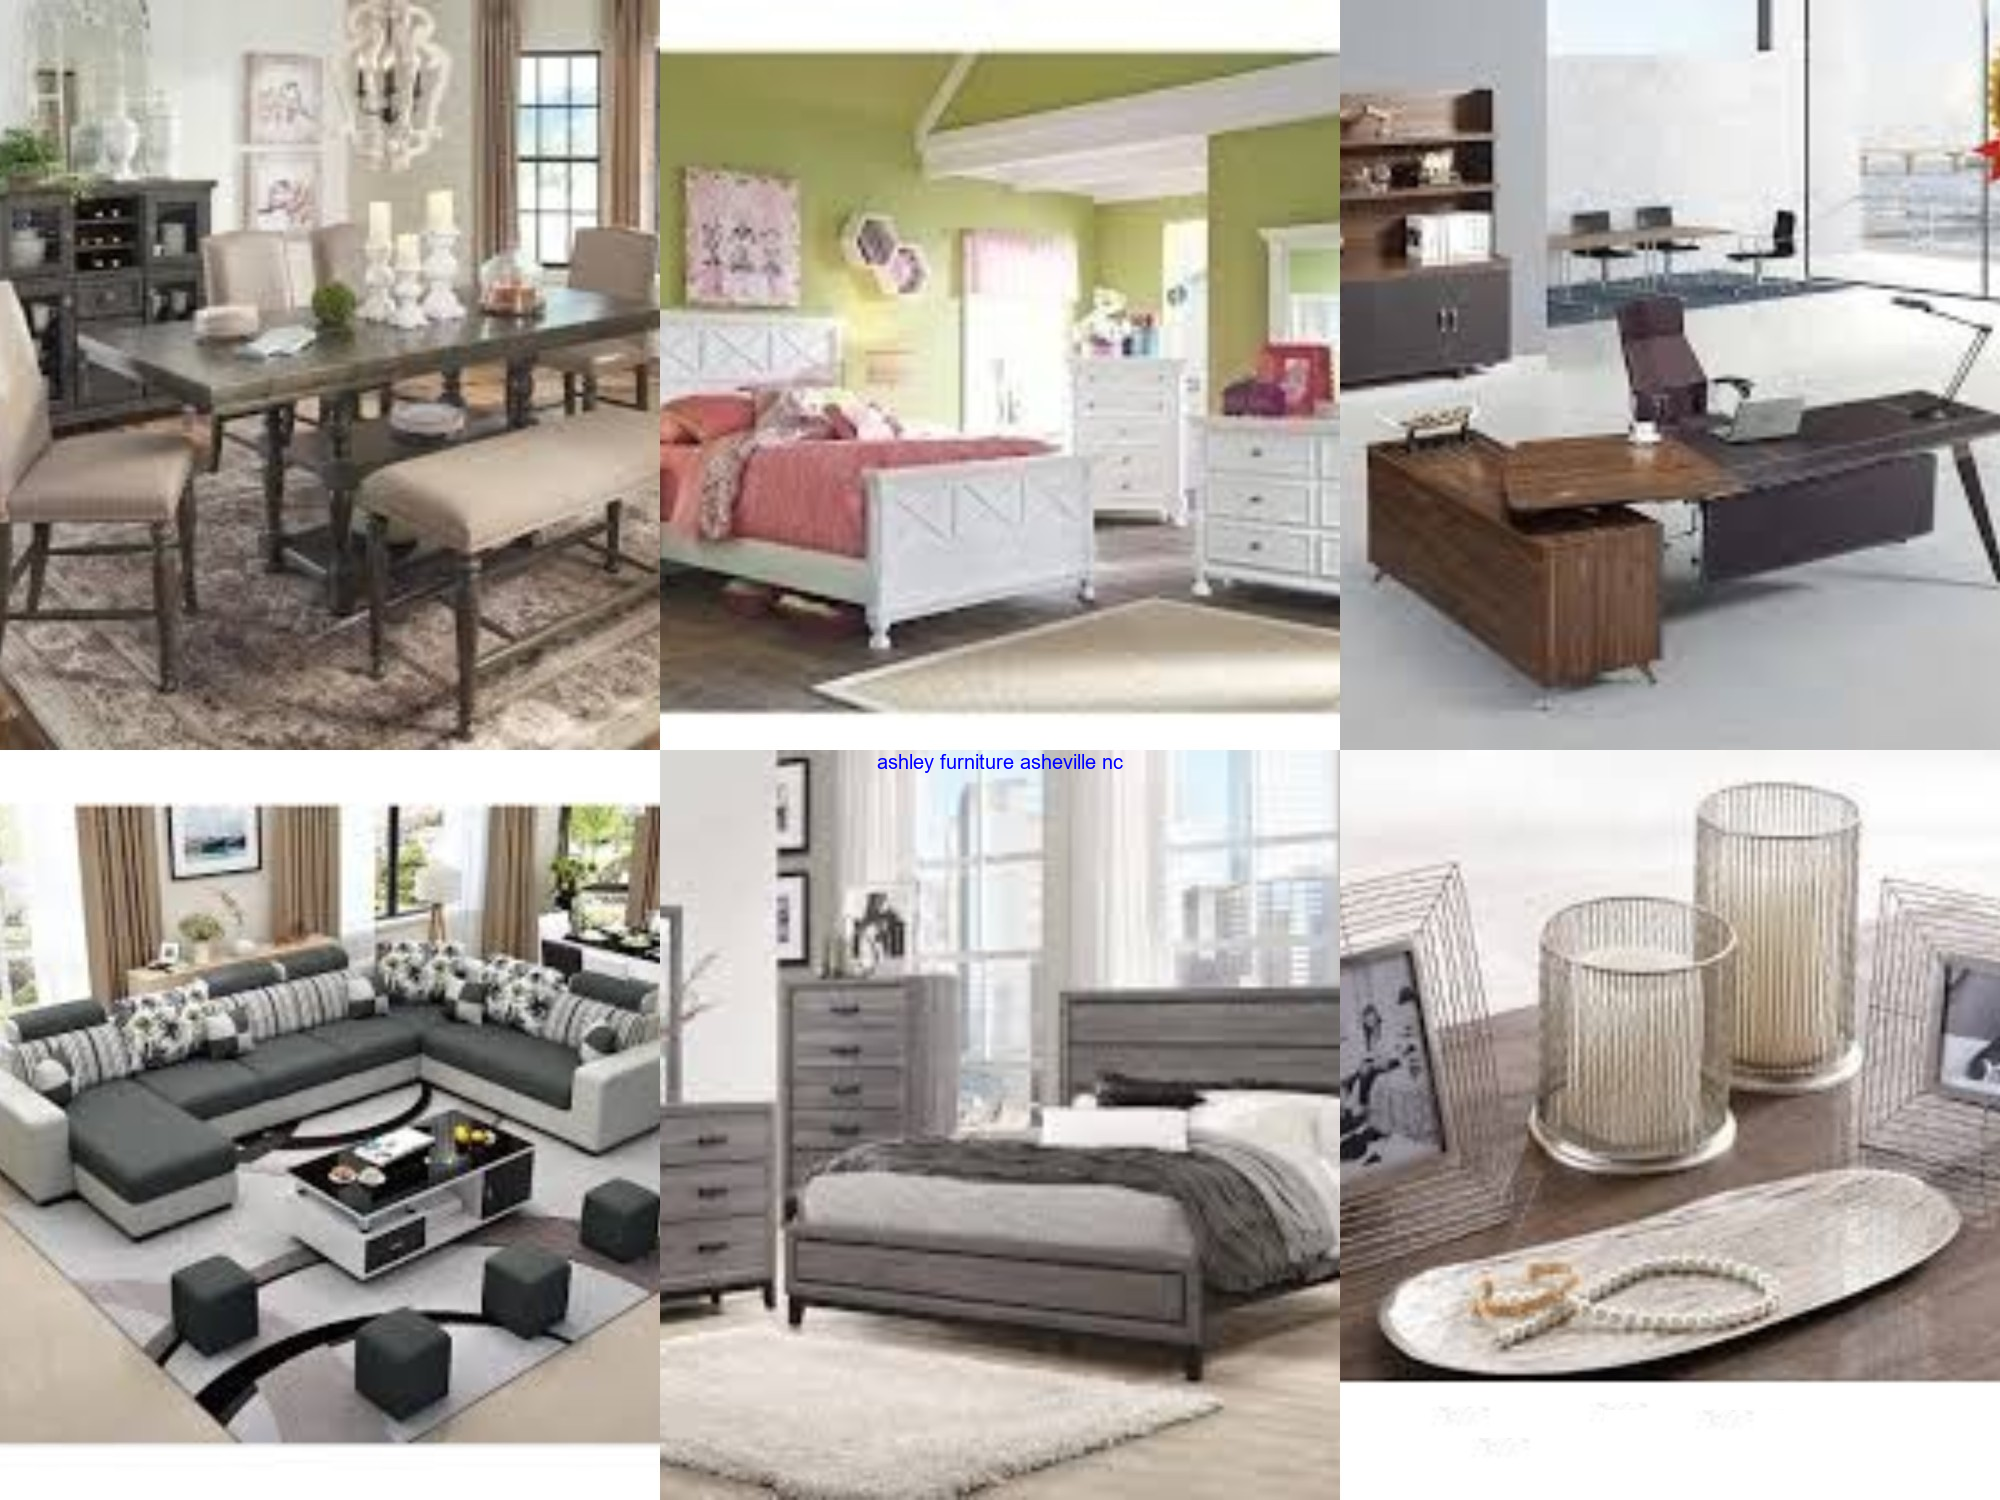 Ashley Furniture Asheville Nc I Suggest That You Try This